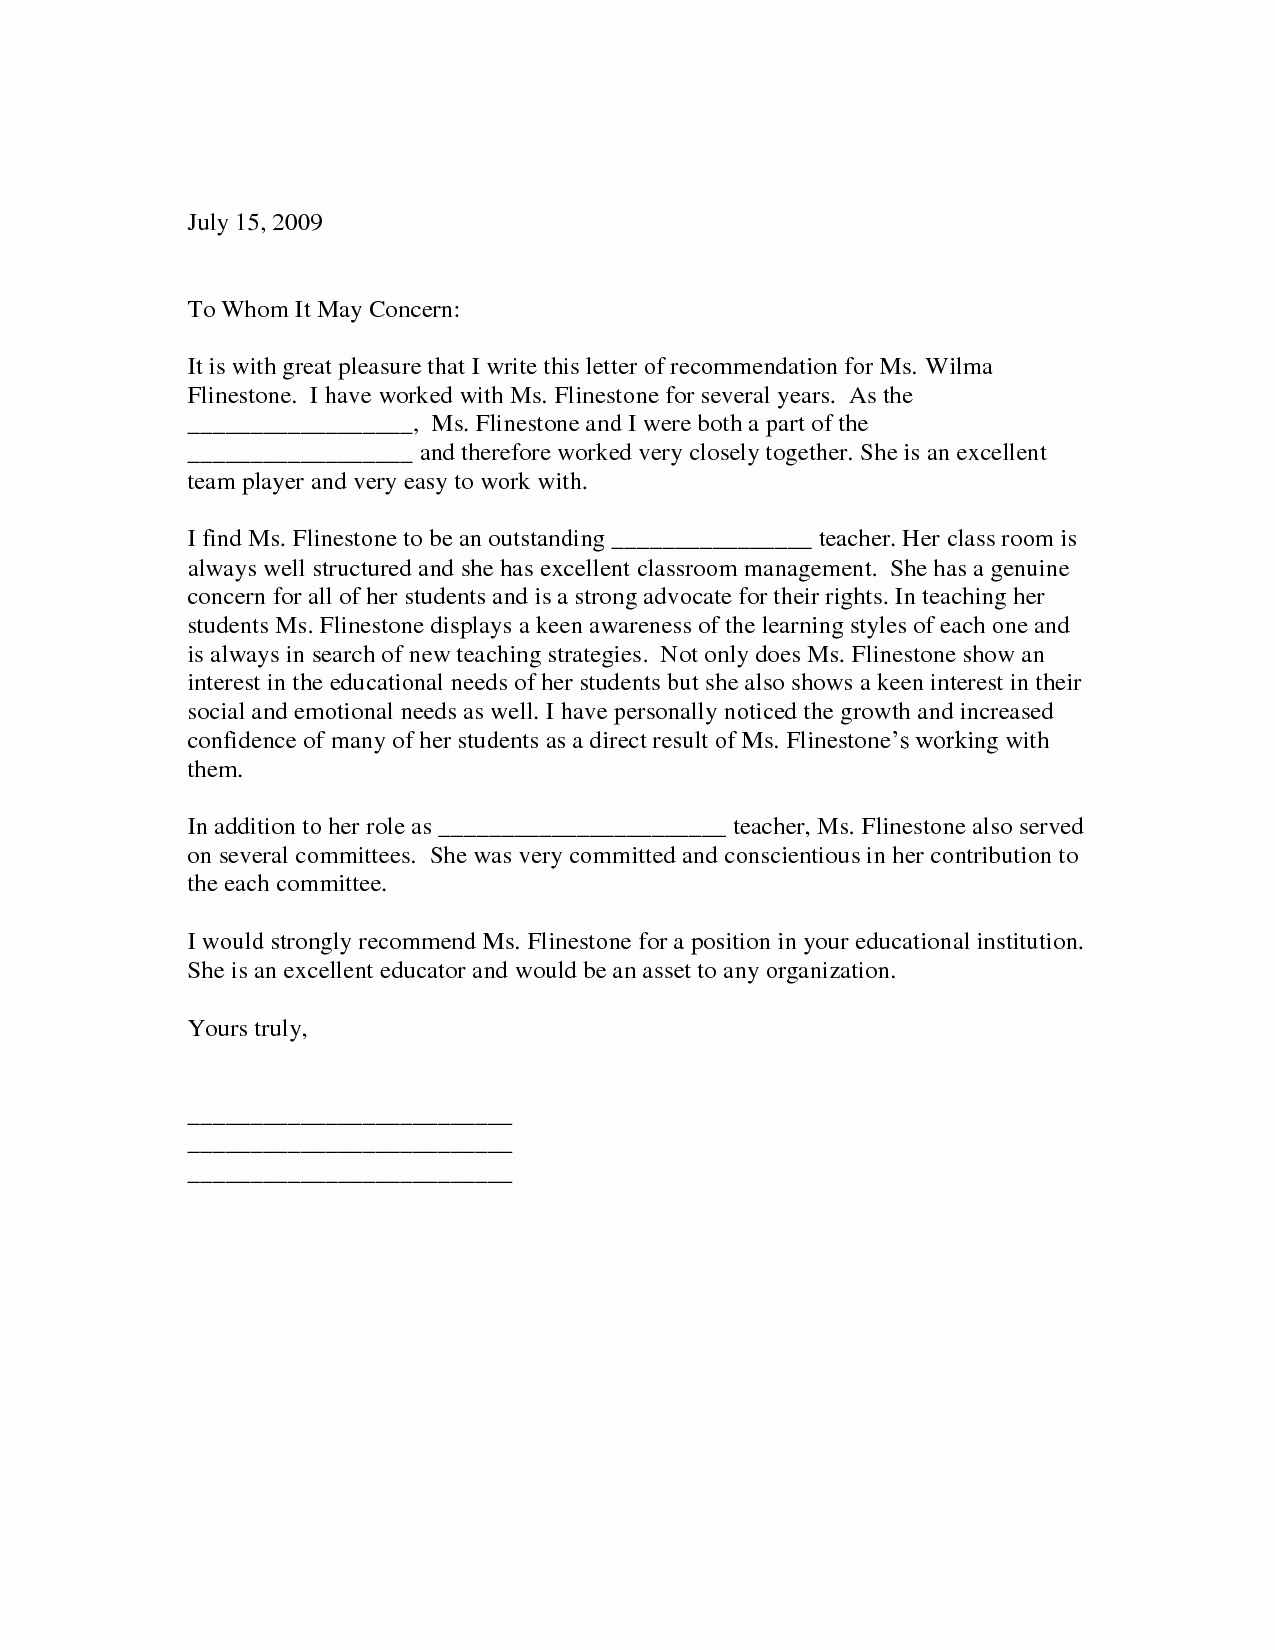 Letter Of Recommendation Sample Teacher Elegant Sample Letter Of Re Mendation for Teacher